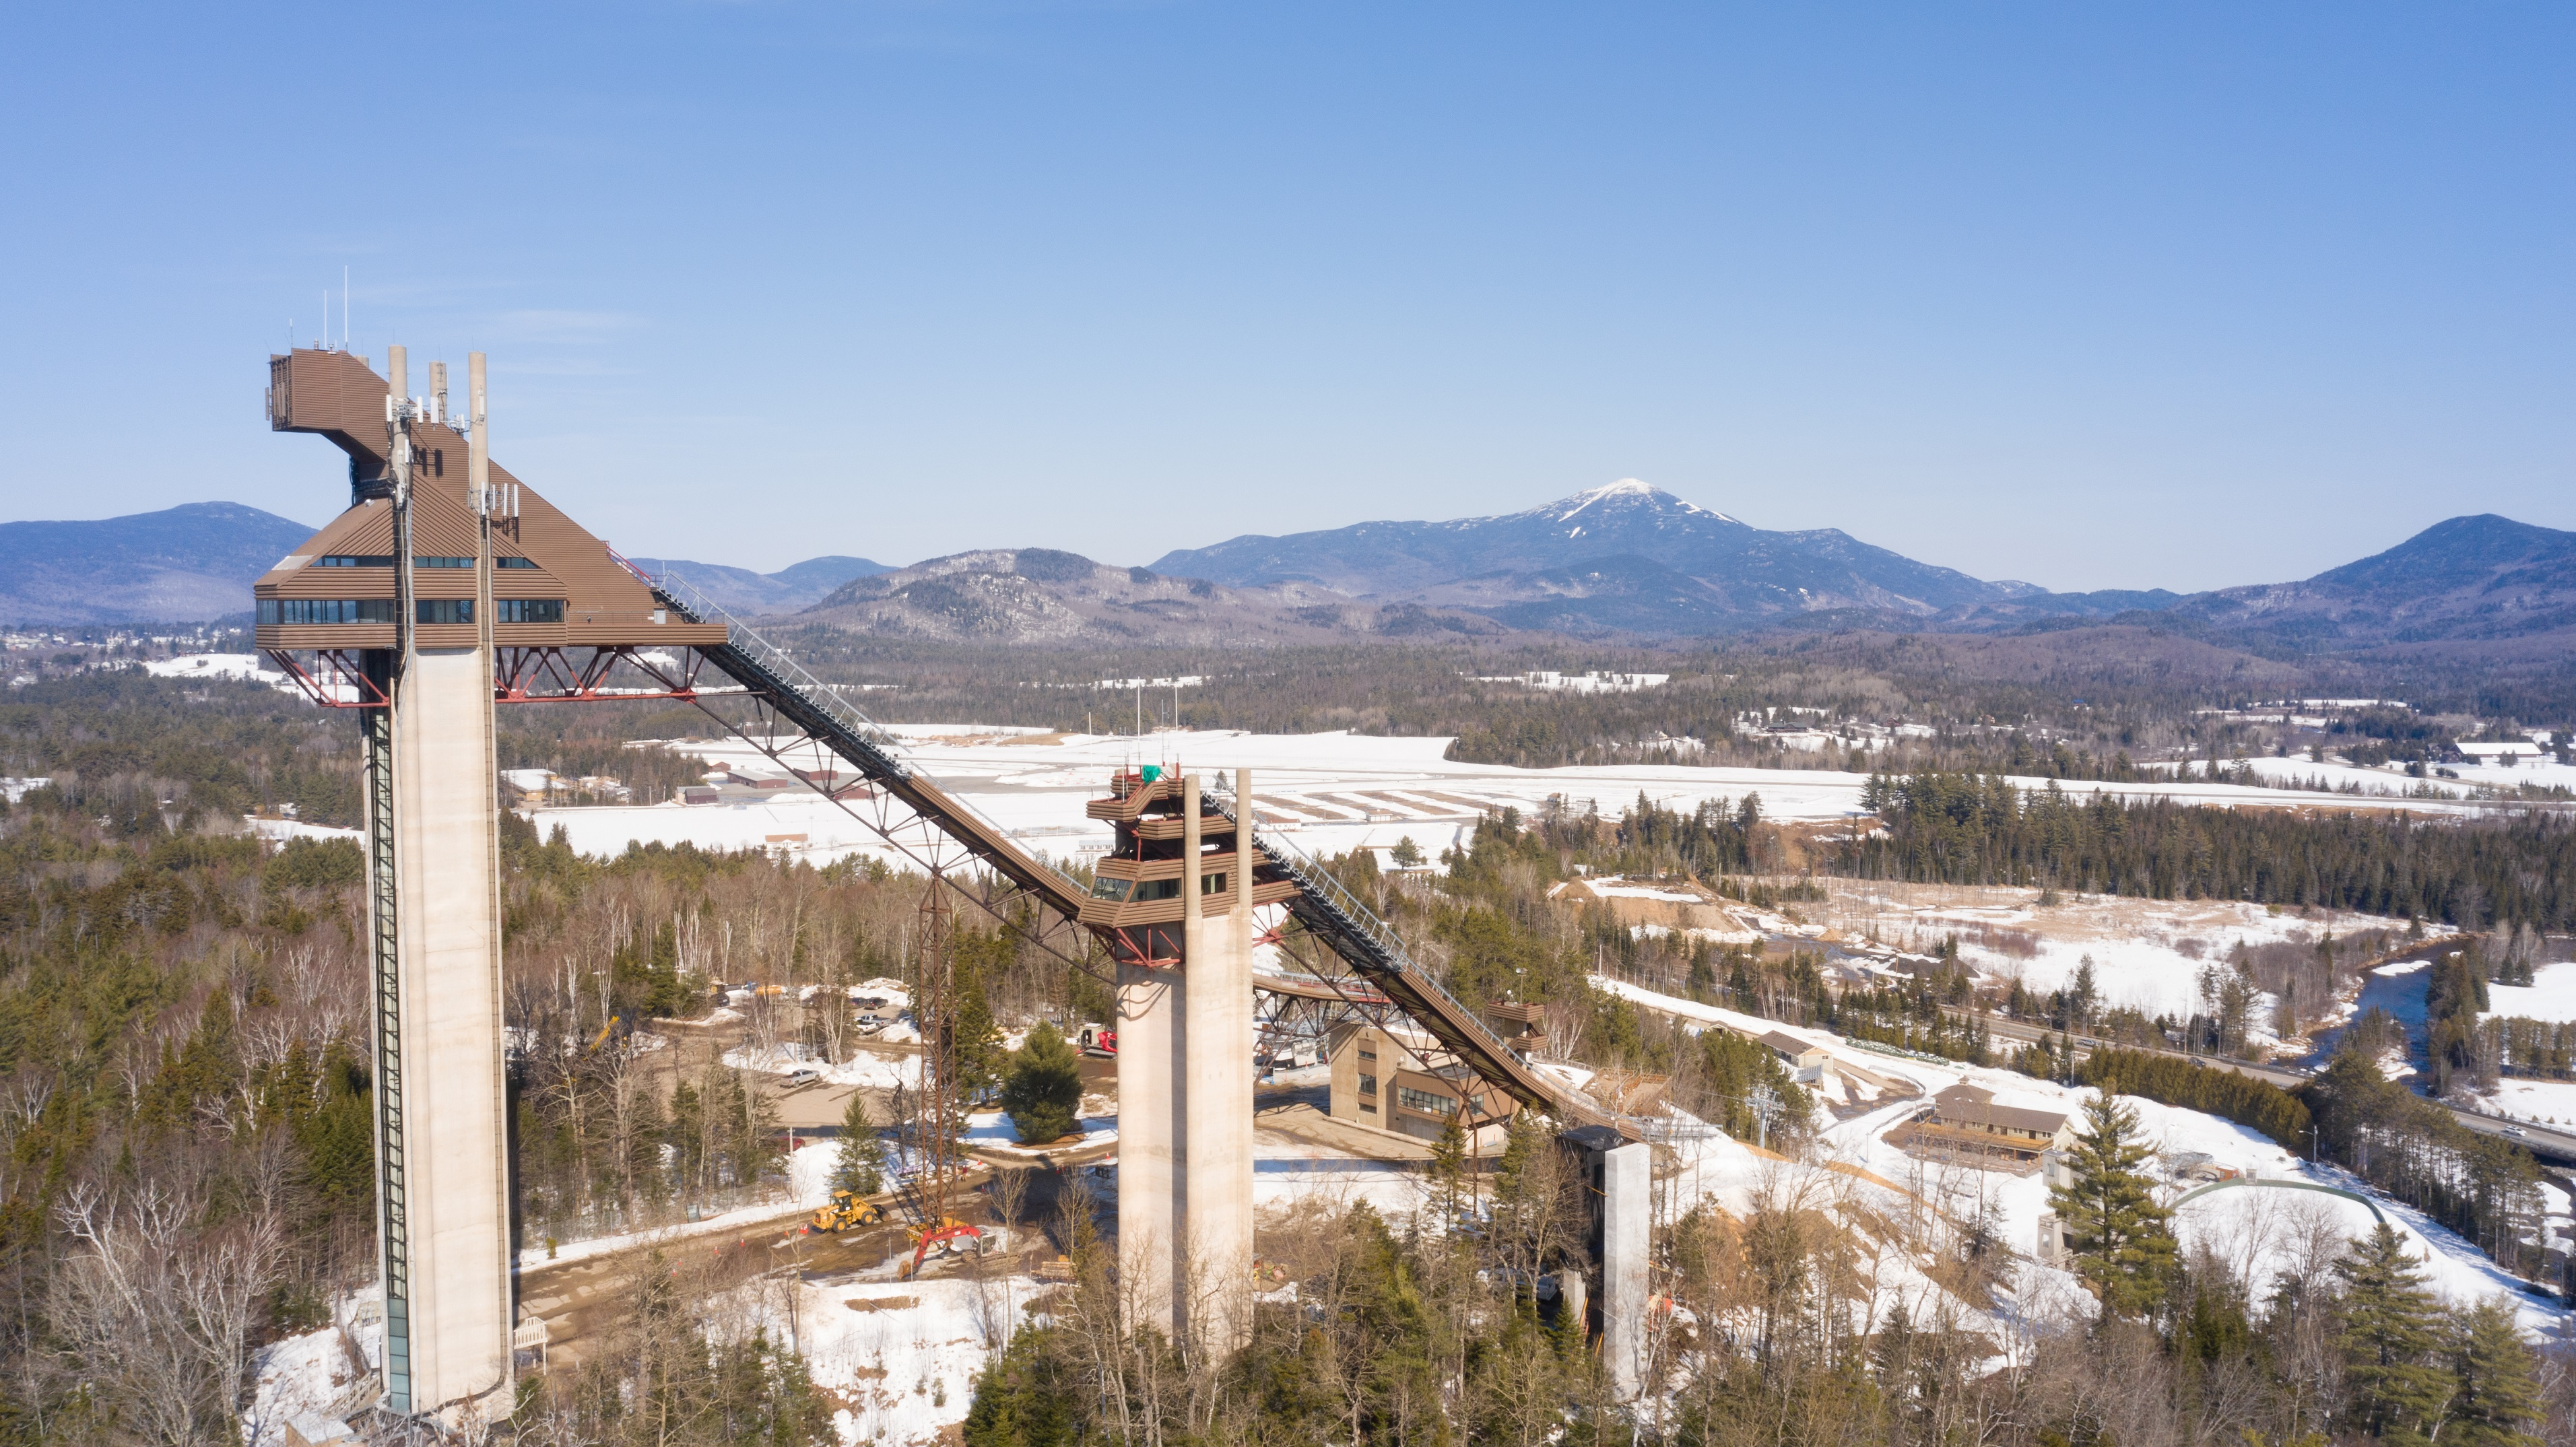 ORDA Olympic Jumping Complex 90M and 120M Ski Jumps